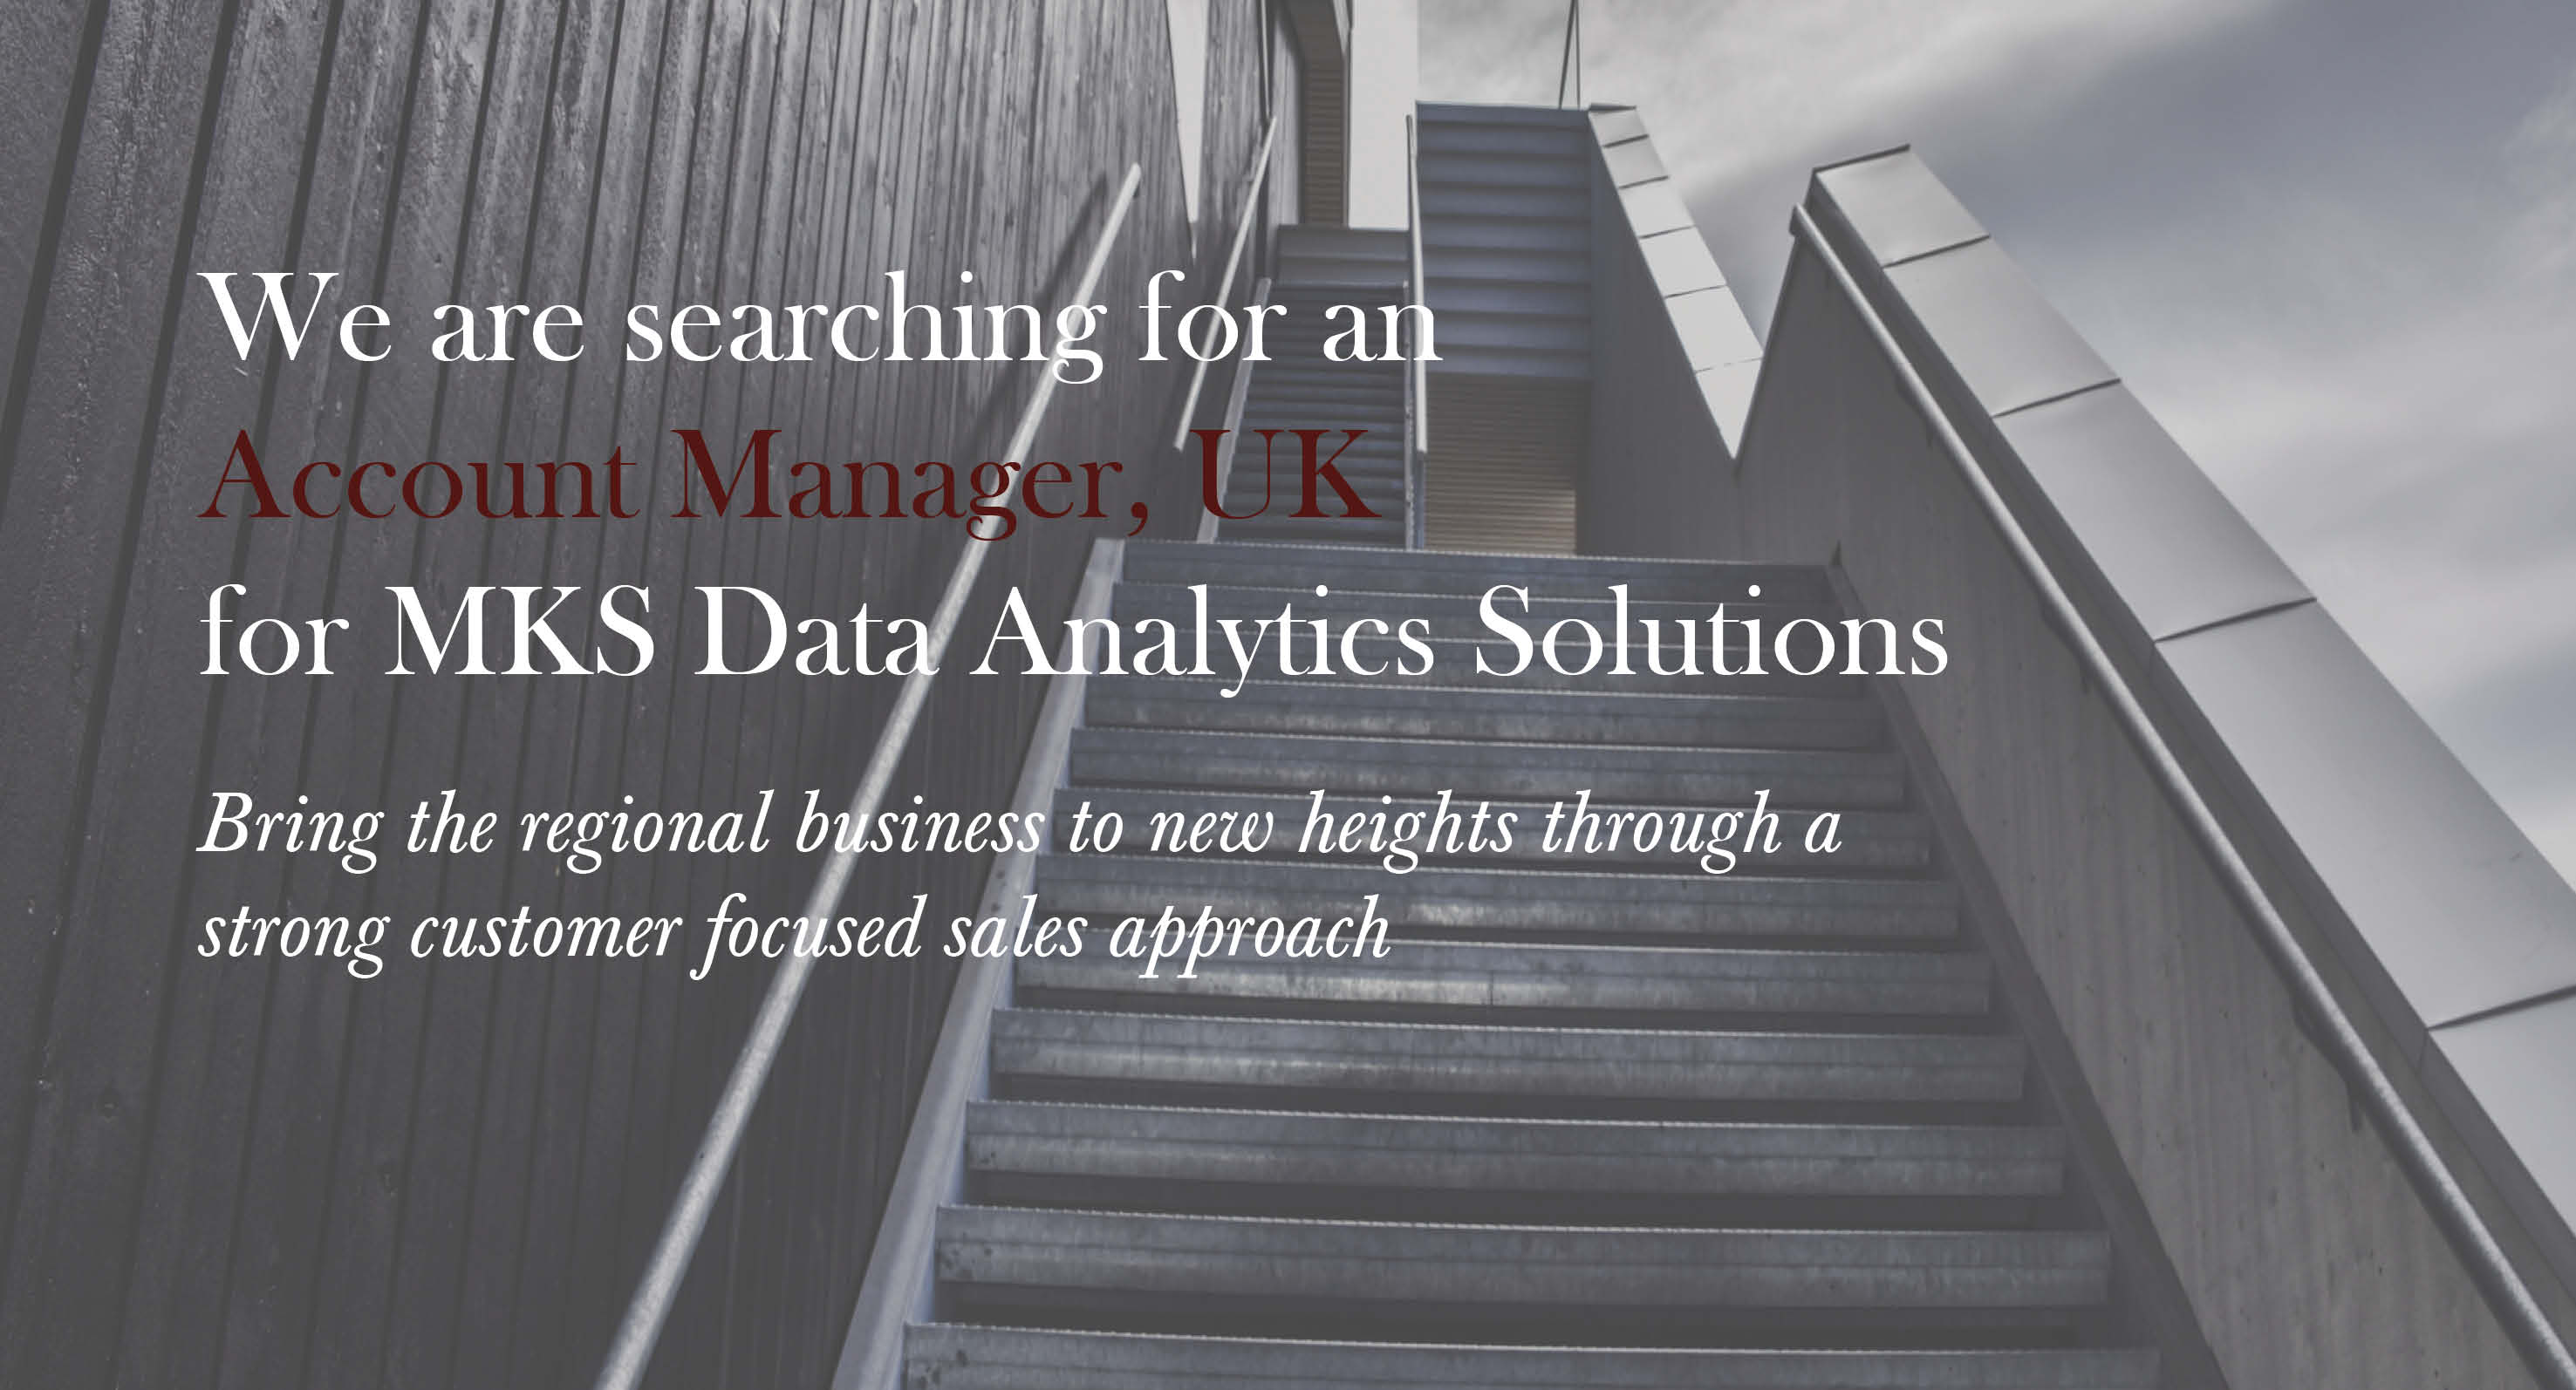 MKS, Account Manager UK